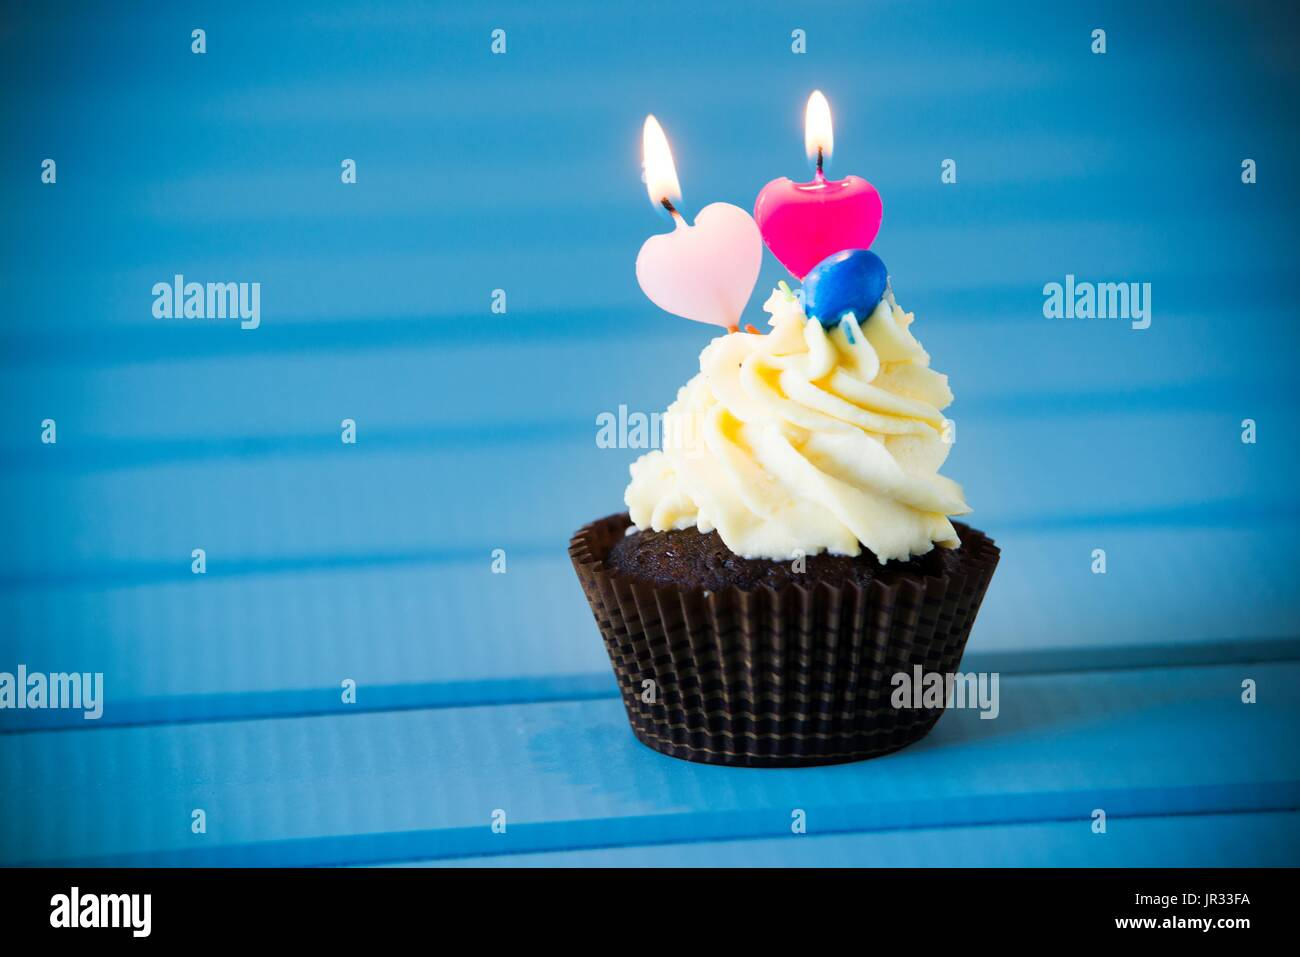 Birthdays Cake Cupcake With A Heart Shaped Candles For 2 Second